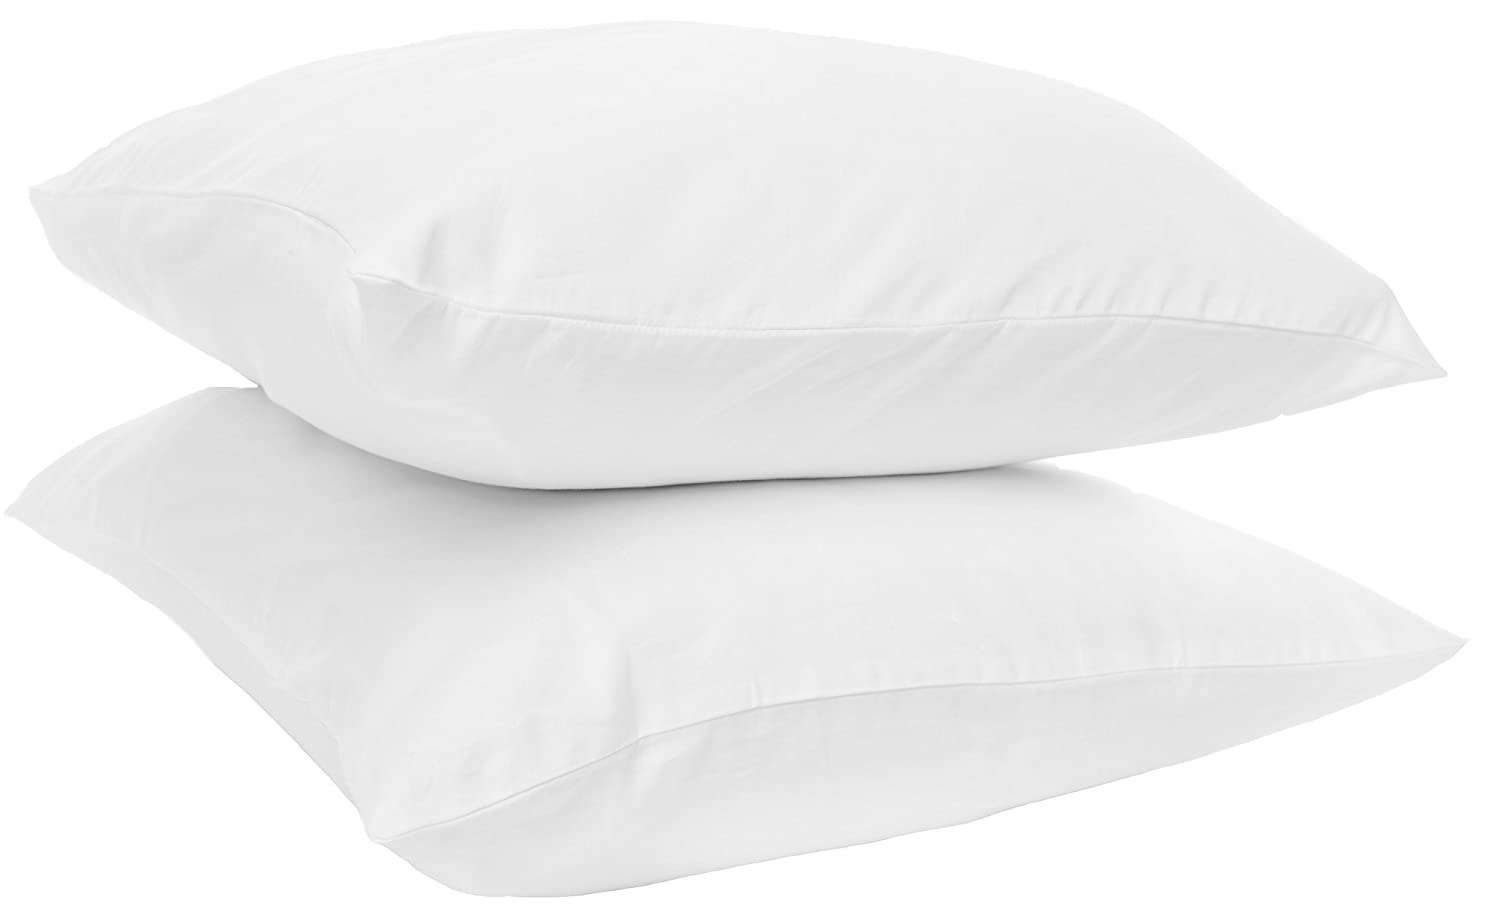 Firm Support Pillows - Pack of 2 Orthopaedic Firm Pillows, Non Allergenic Pillows, Firm and Comfortable Neck and Spine Support Pillow Duvets & Pillows Online